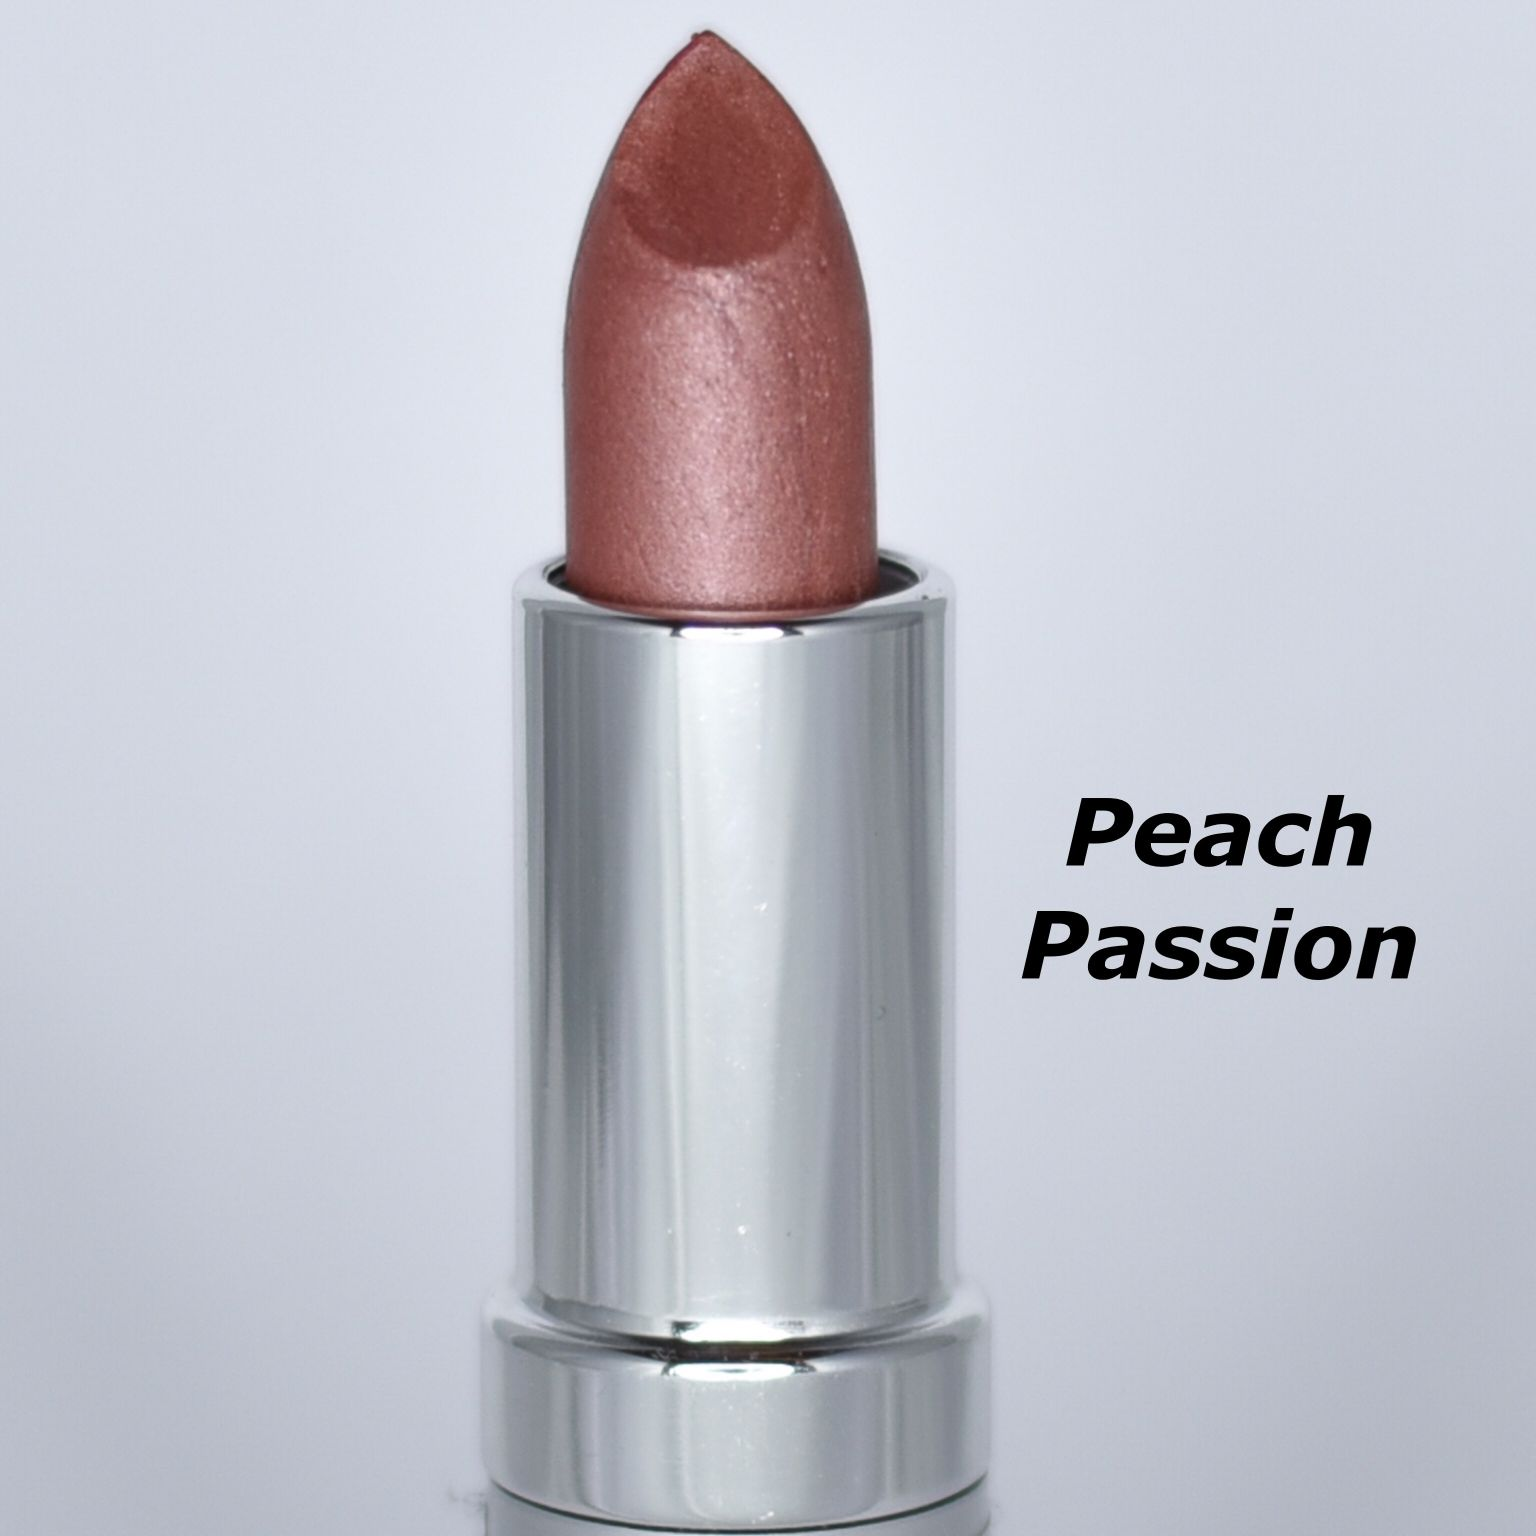 Peach Passion Lipstick